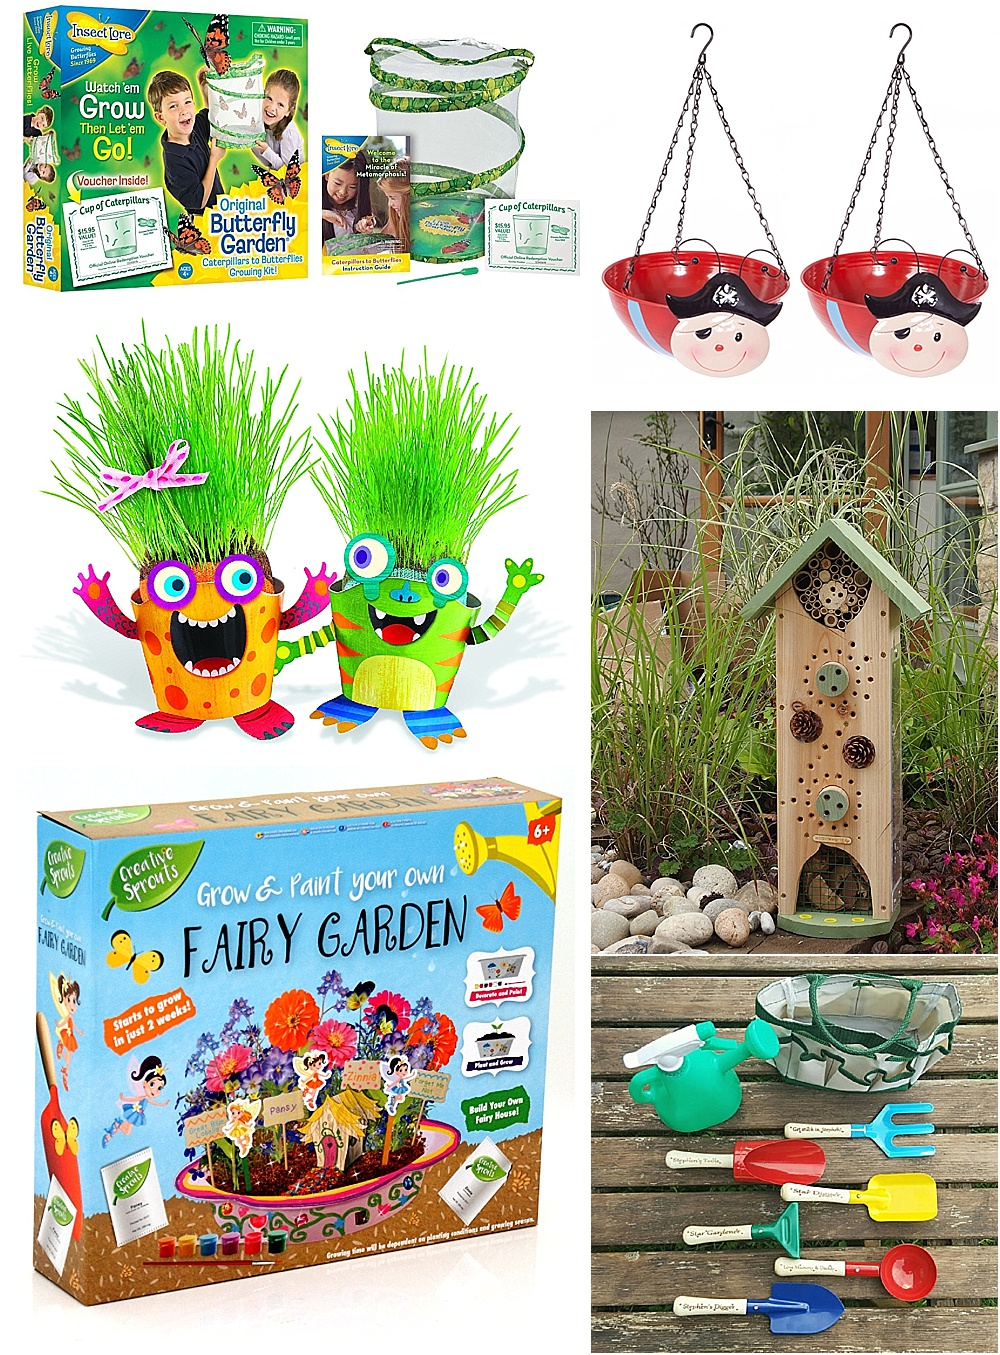 Tips for growing a kids garden